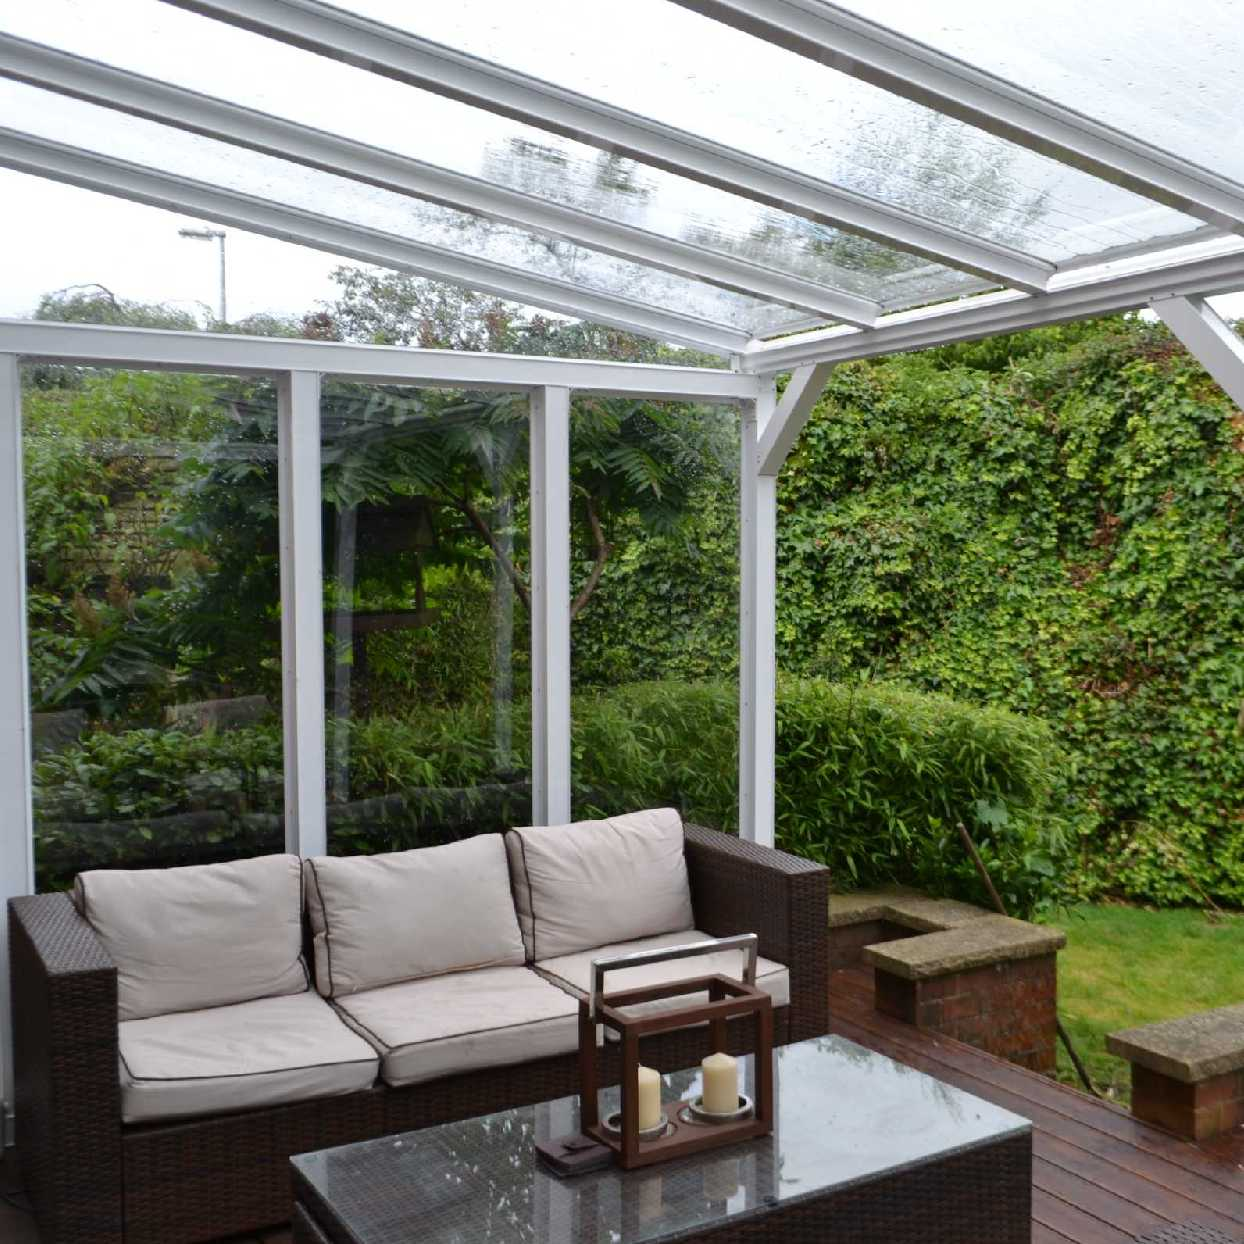 Omega Smart Lean-To Canopy UNGLAZED for 6mm Glazing - 7.7m (W) x 3.5m (P), (4) Supporting Posts